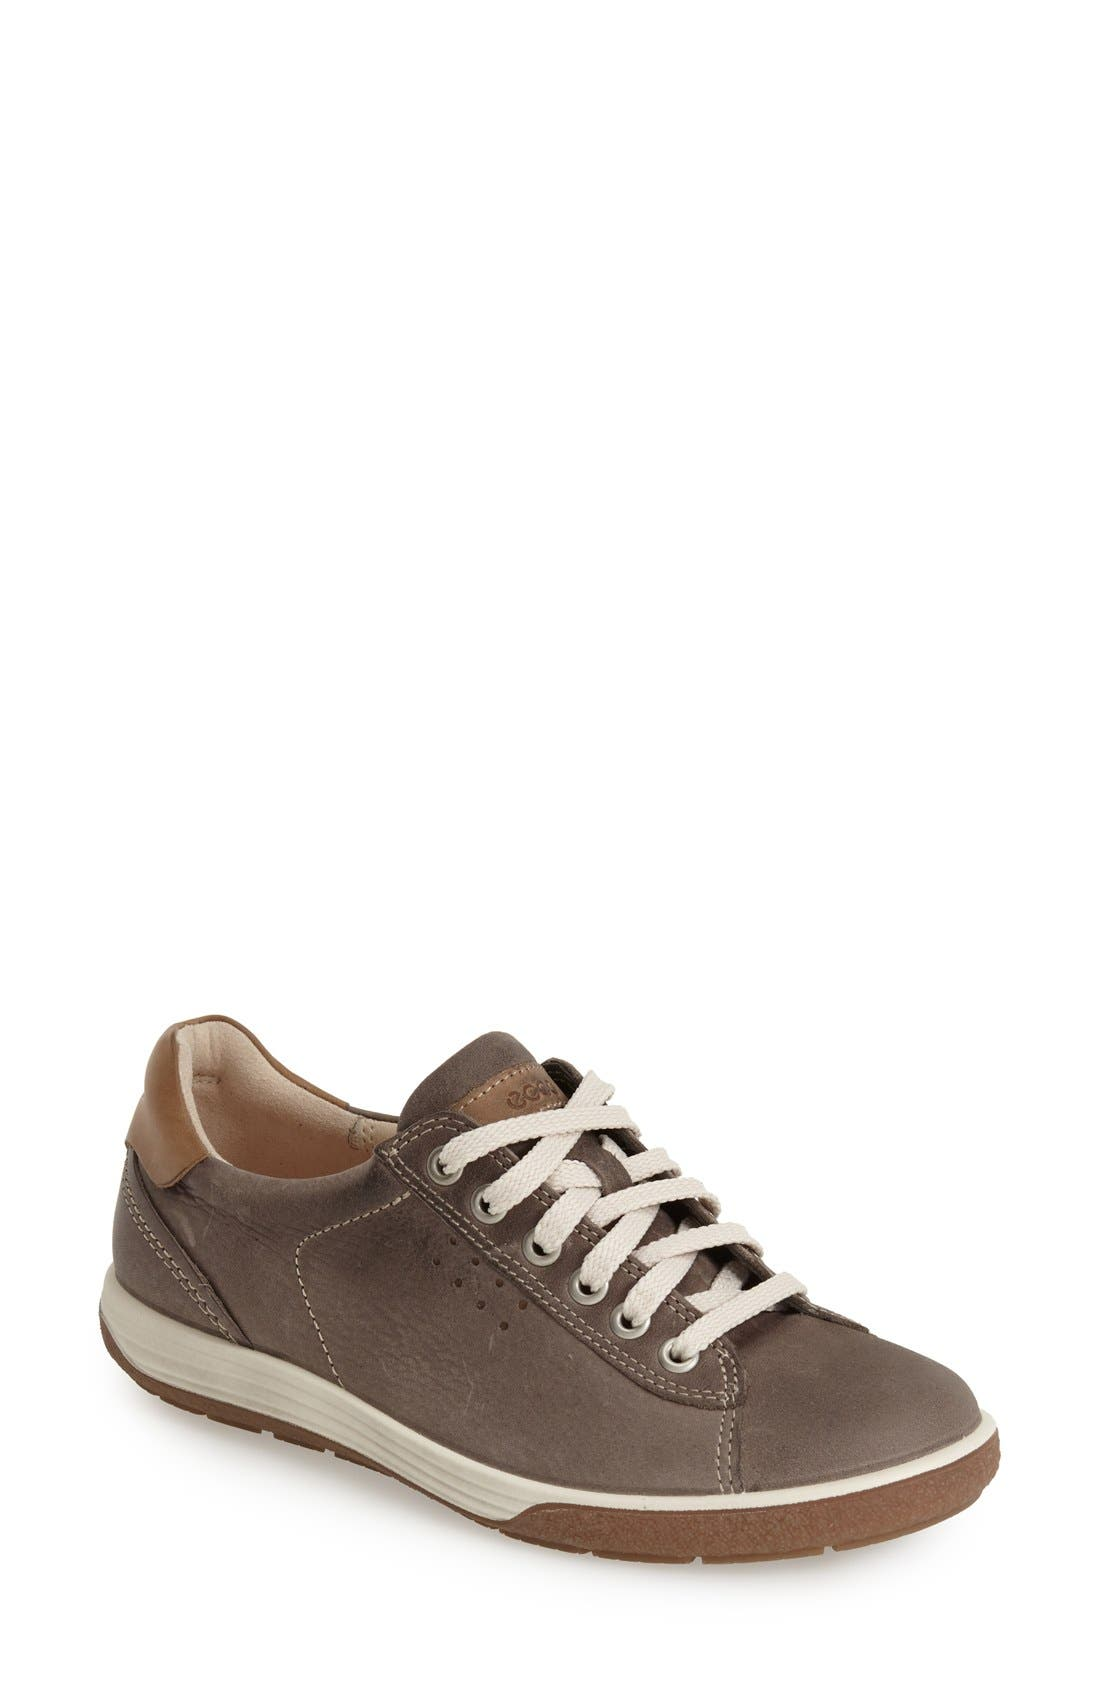 'Chase II' Sneaker,                             Main thumbnail 1, color,                             Warm Grey